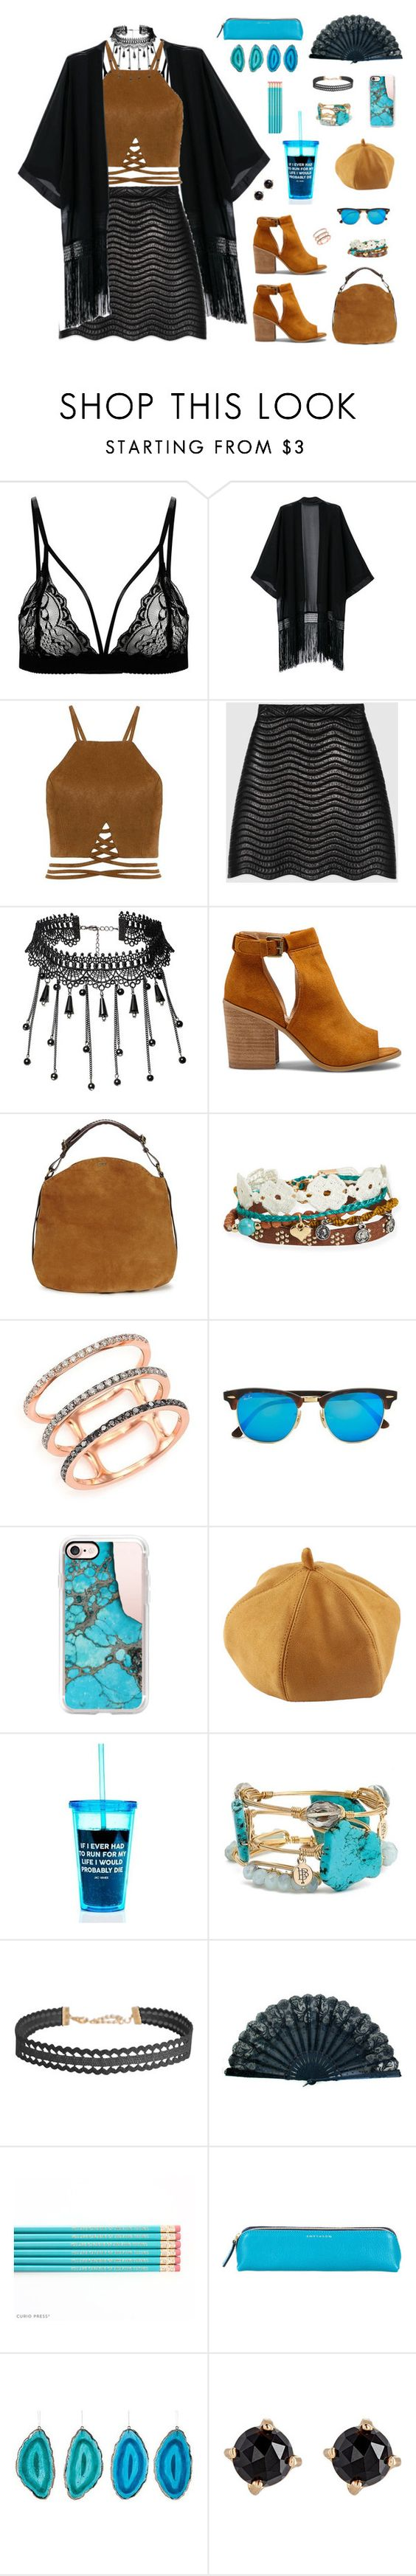 """""""% SO LET'S SET THE WORLD ON FIRE, WE CAN BURN BRIGHTER THAN THE SUN."""" by houseplants ❤ liked on Polyvore featuring Gucci, Sole Society, UGG, Aéropostale, EF Collection, Ray-Ban, Casetify, Bourbon and Boweties, Humble Chic and Smythson"""